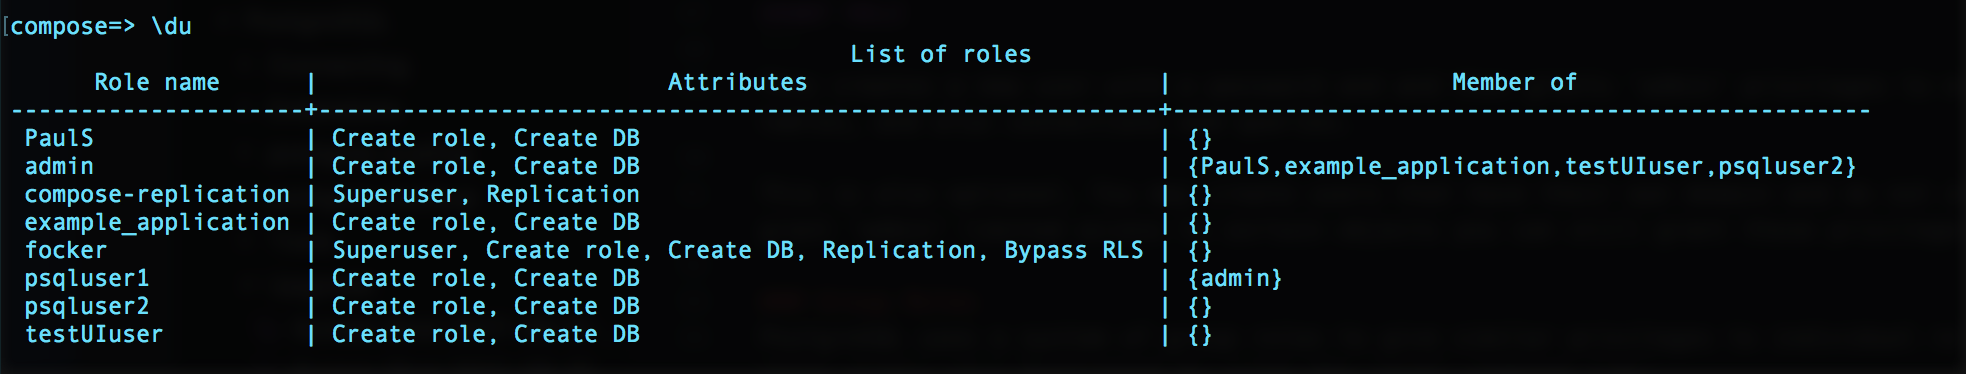 Example output of the `\du` command.